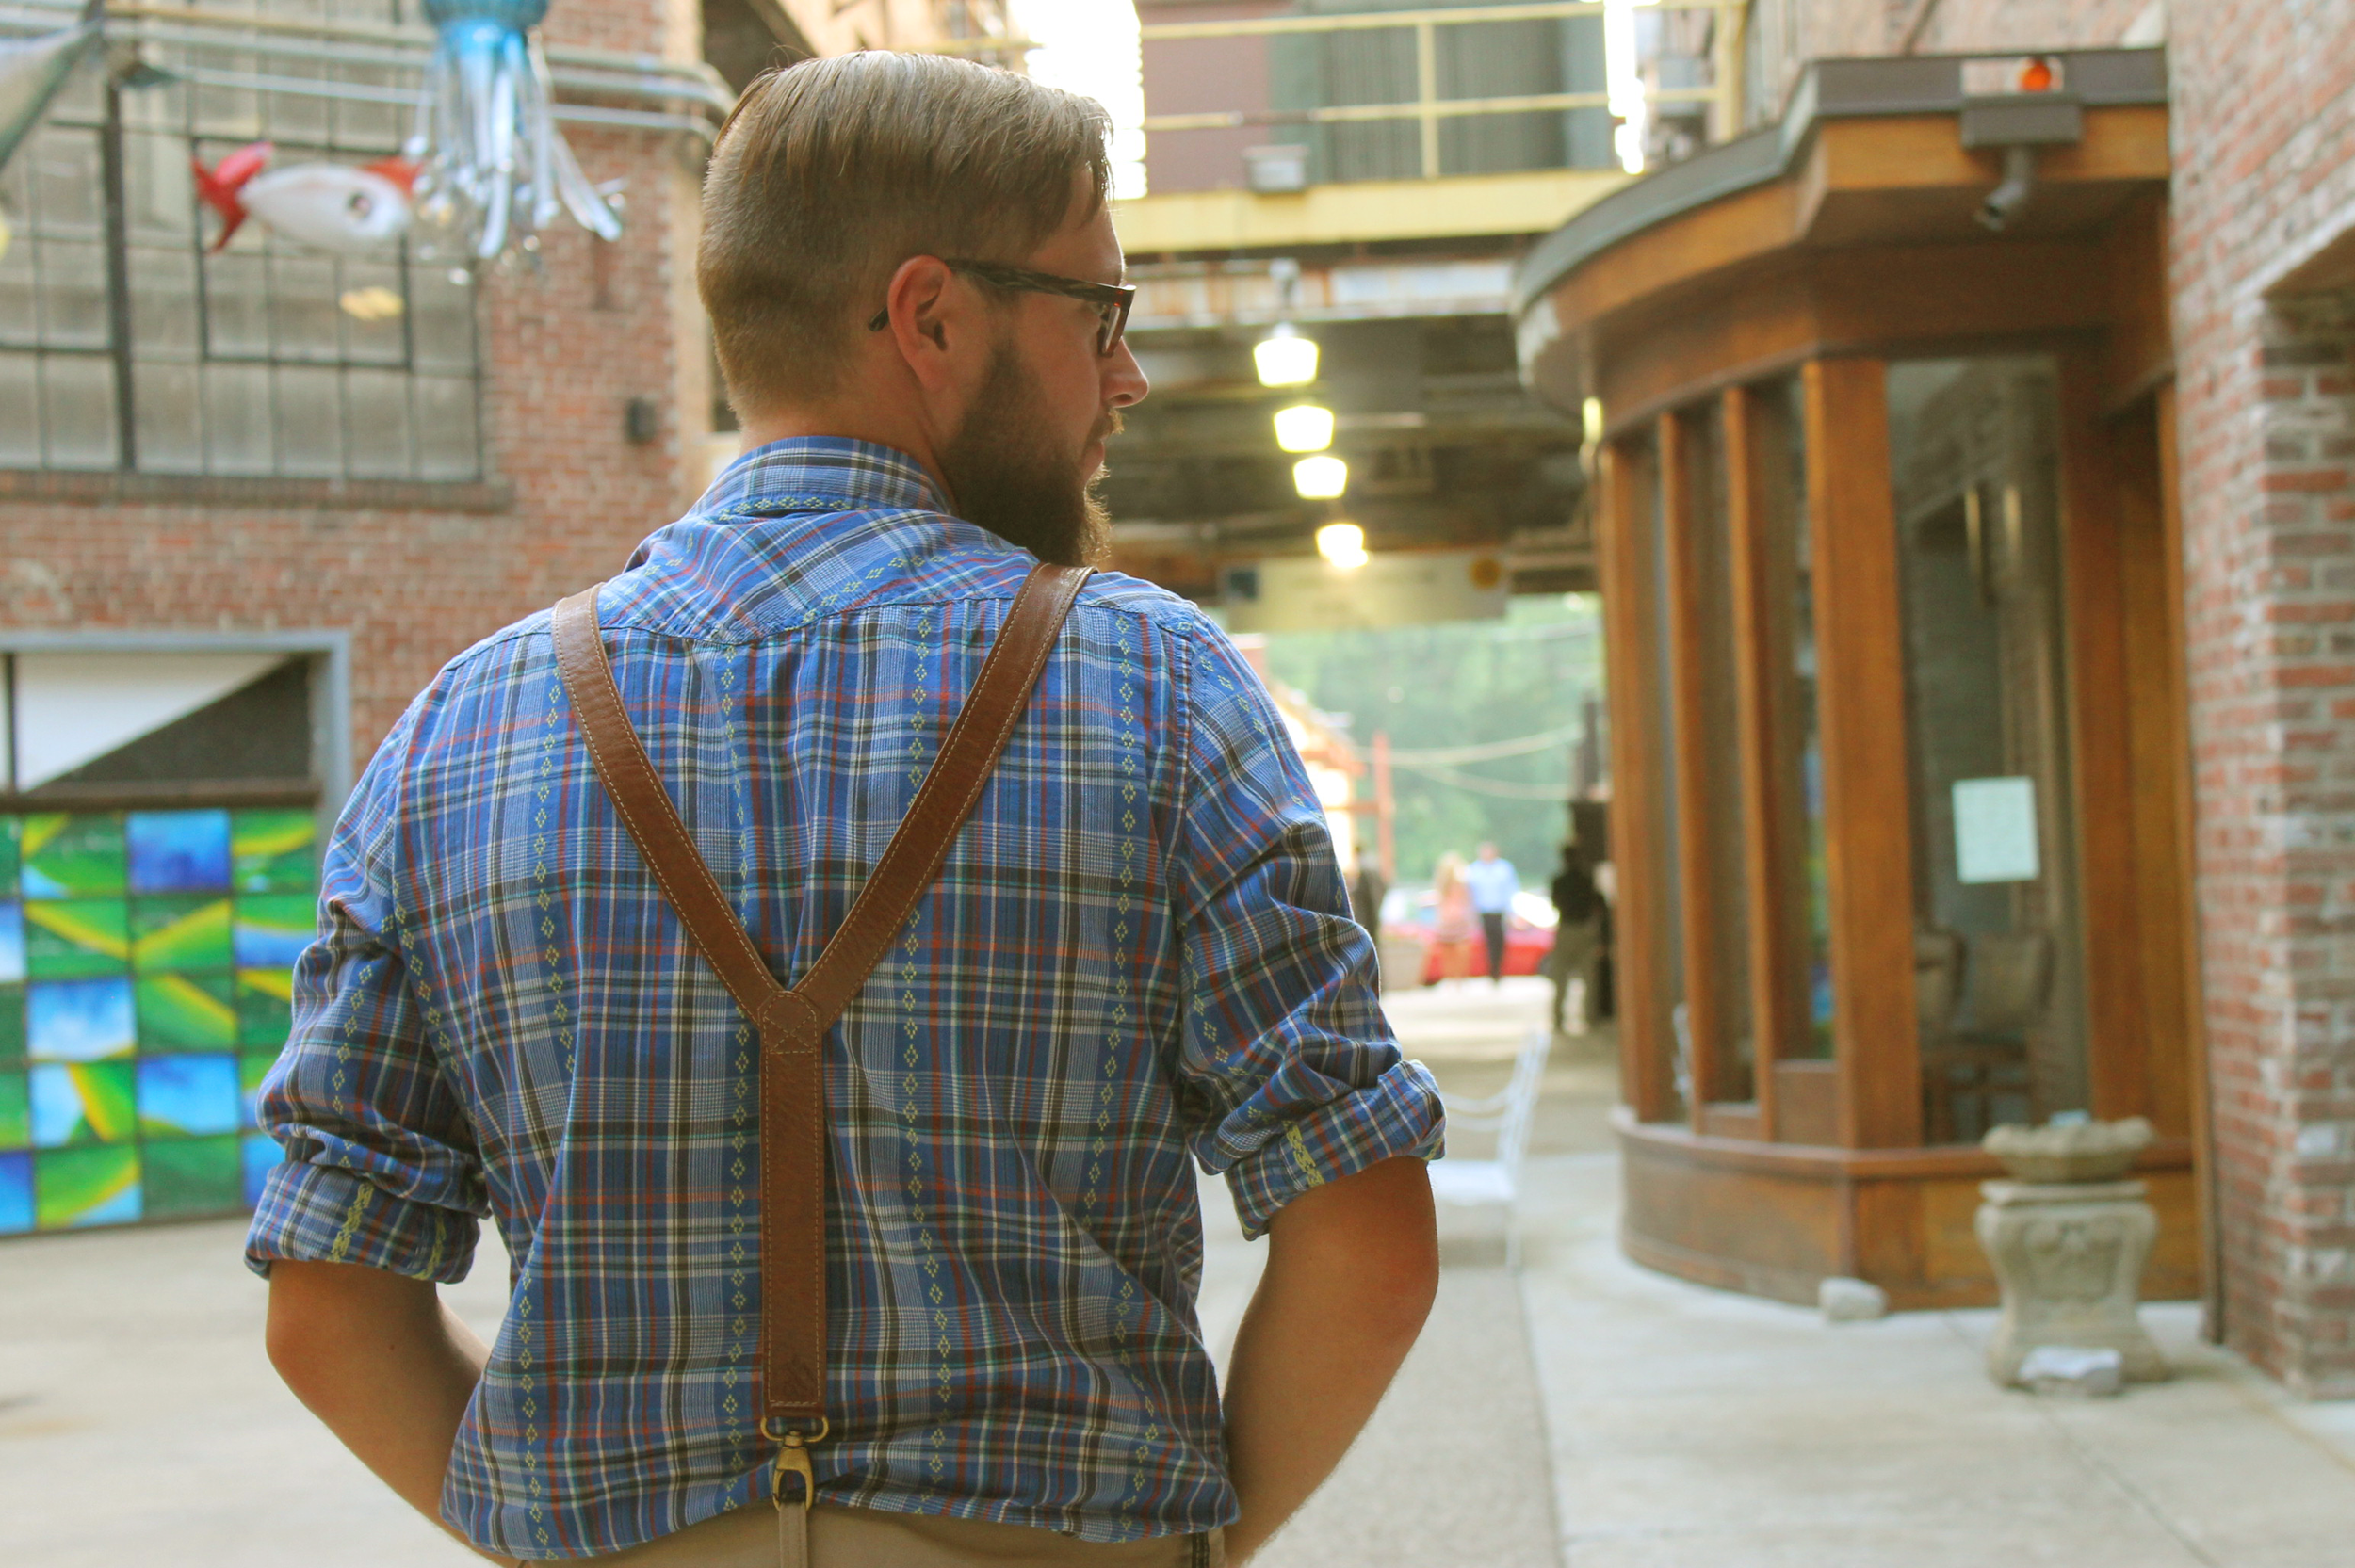 Sahel Suspenders   A modern take on a vintage classic. These aren't your grandpa's suspenders.